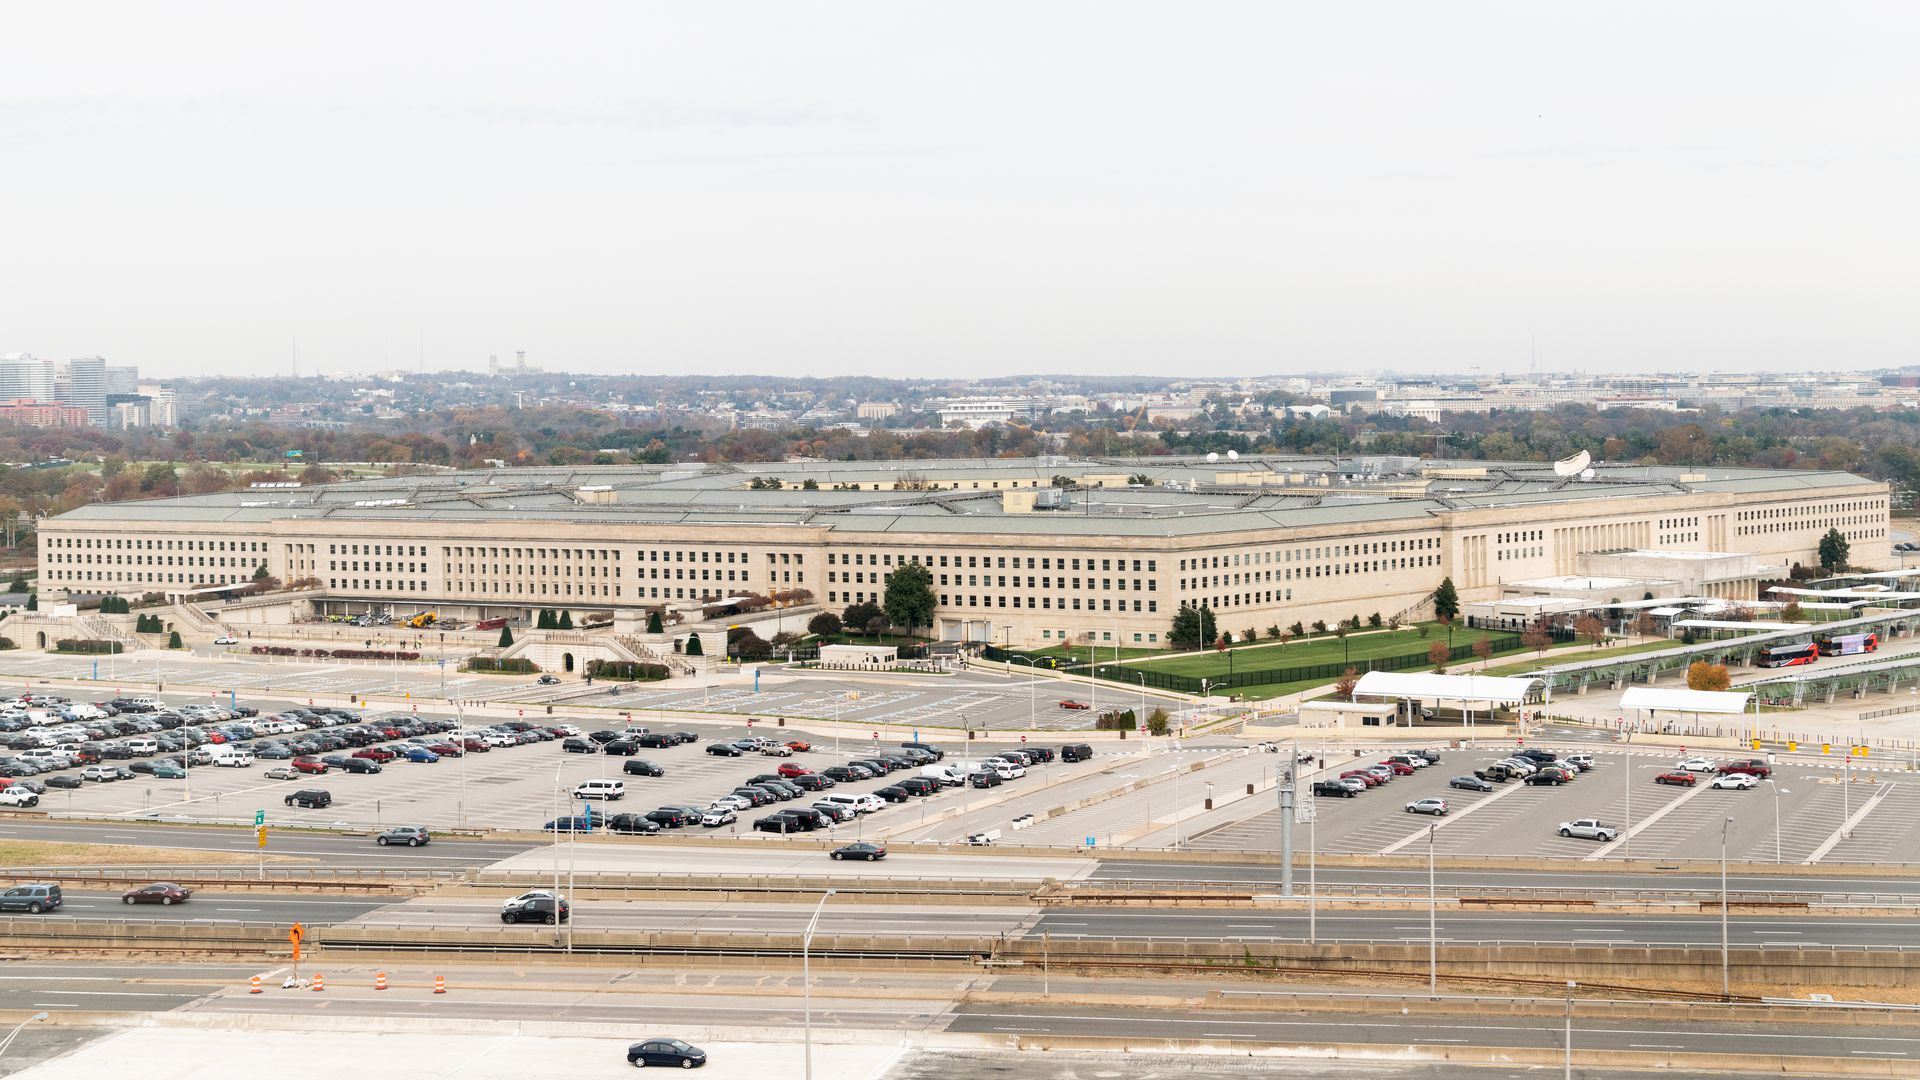 The Pentagon building from afar